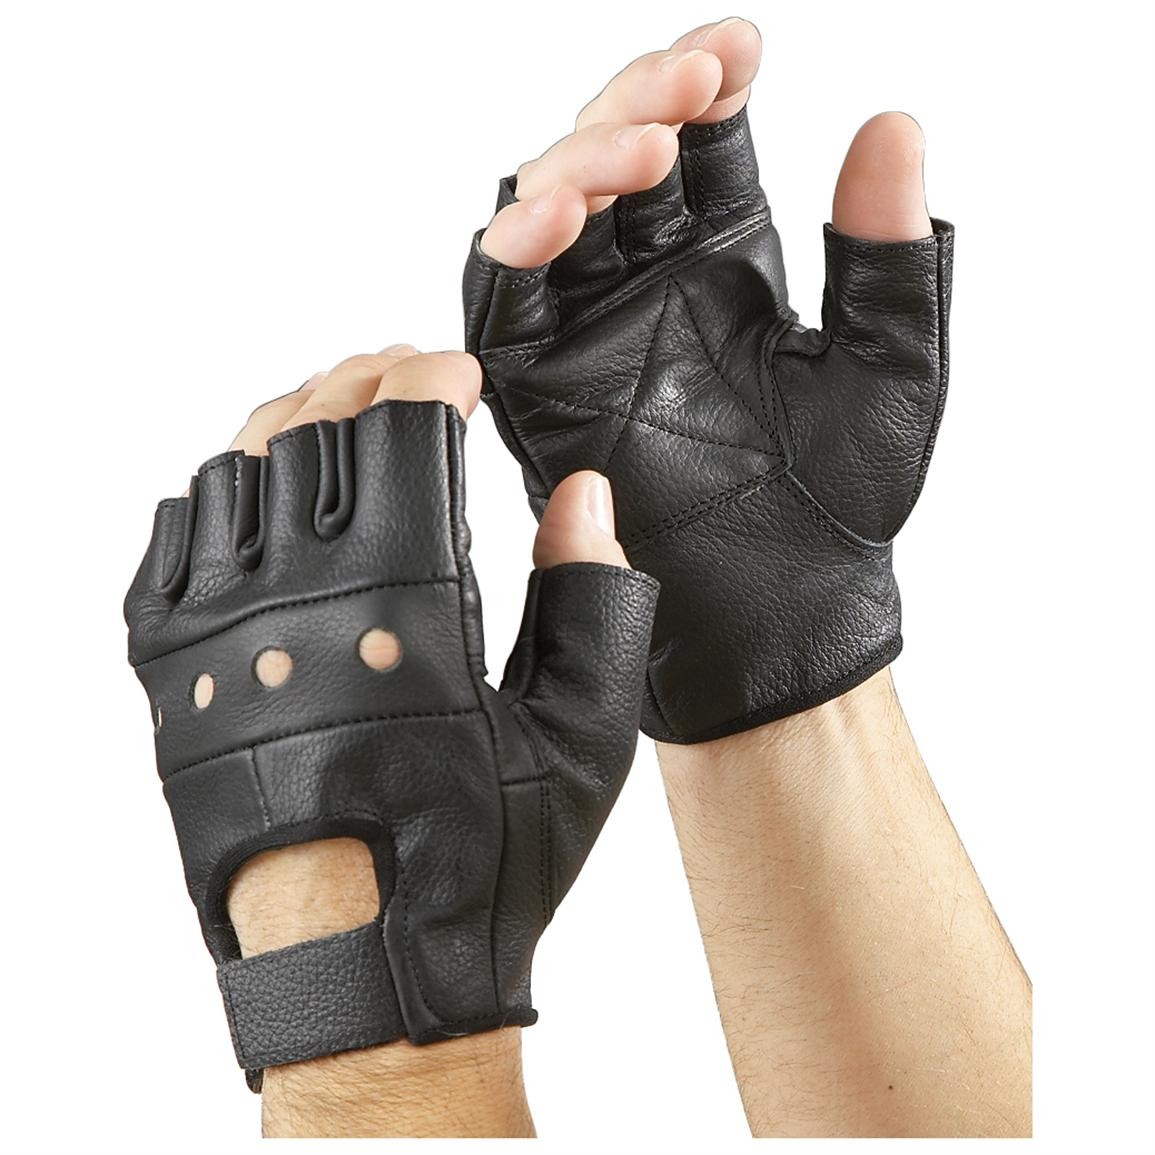 Mens gloves no fingers - 2 Prs Of Raider Fingerless Leather Gloves